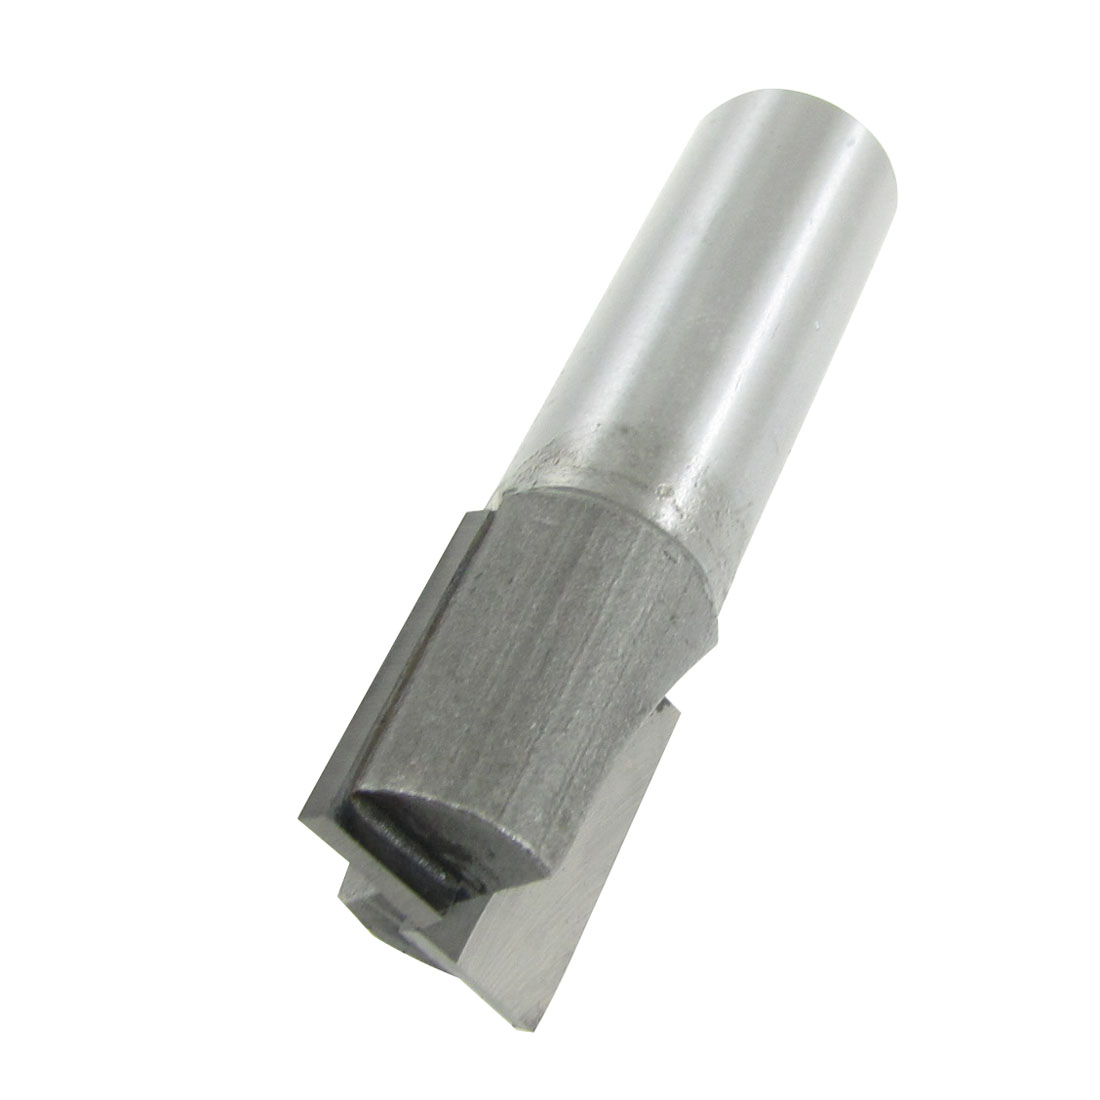 "1/2"" Shank Dia 5/8"" Cutting Diameter Cleaning Bottom Router Bit"